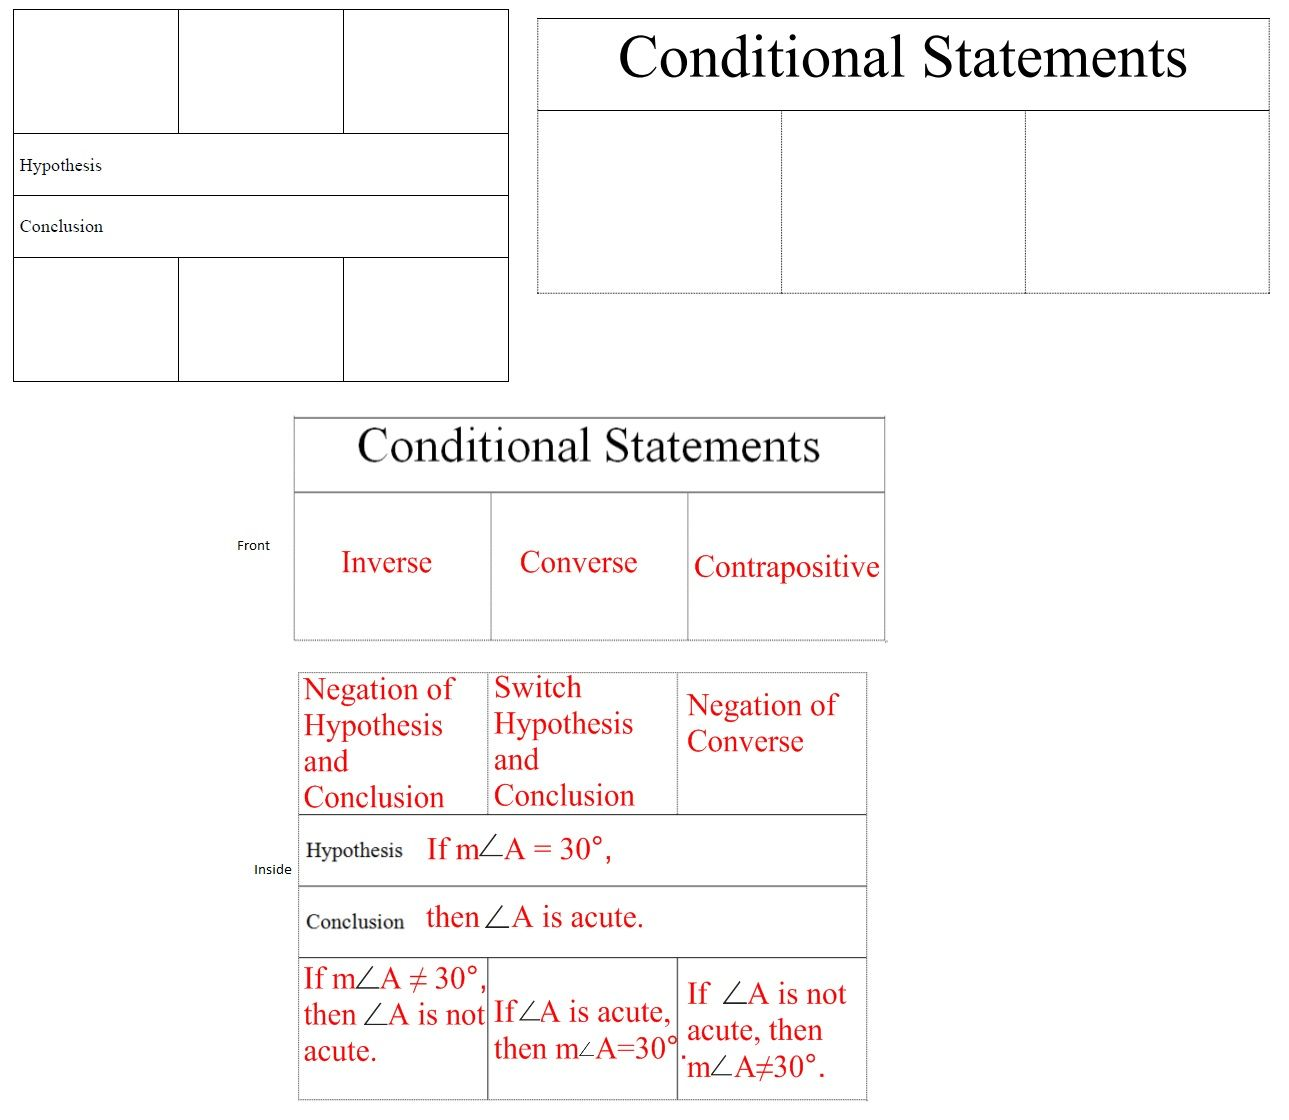 Conditional Statements Foldable